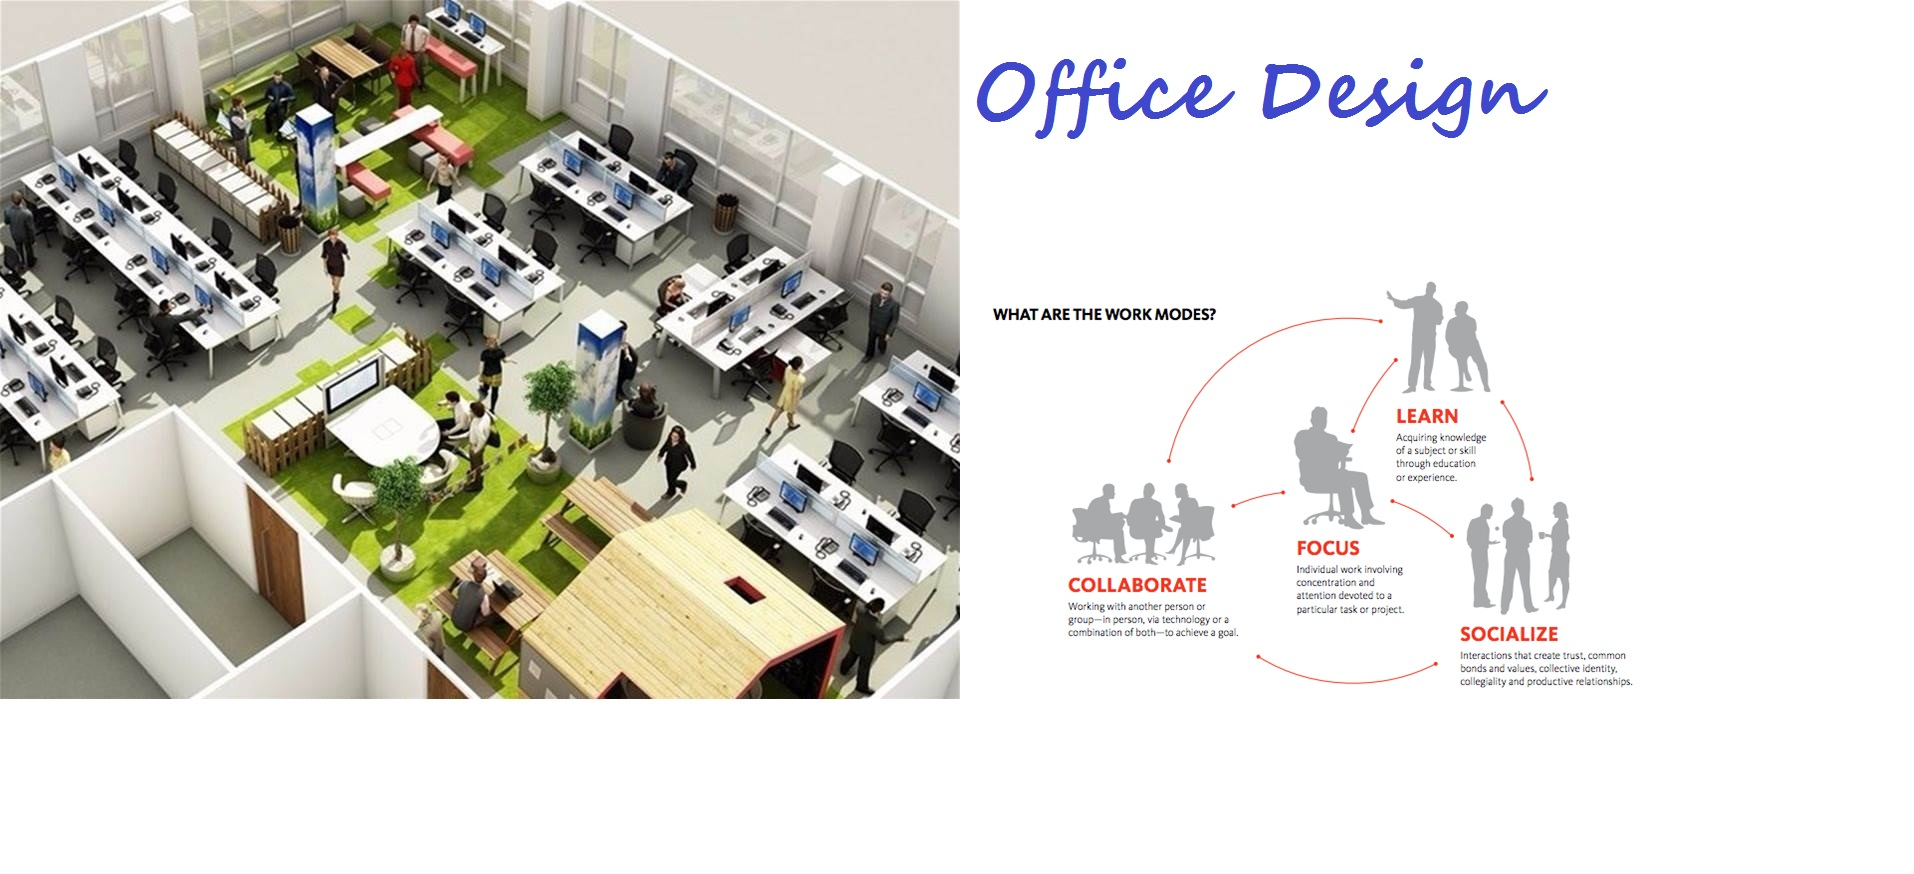 Office zoning and work modes